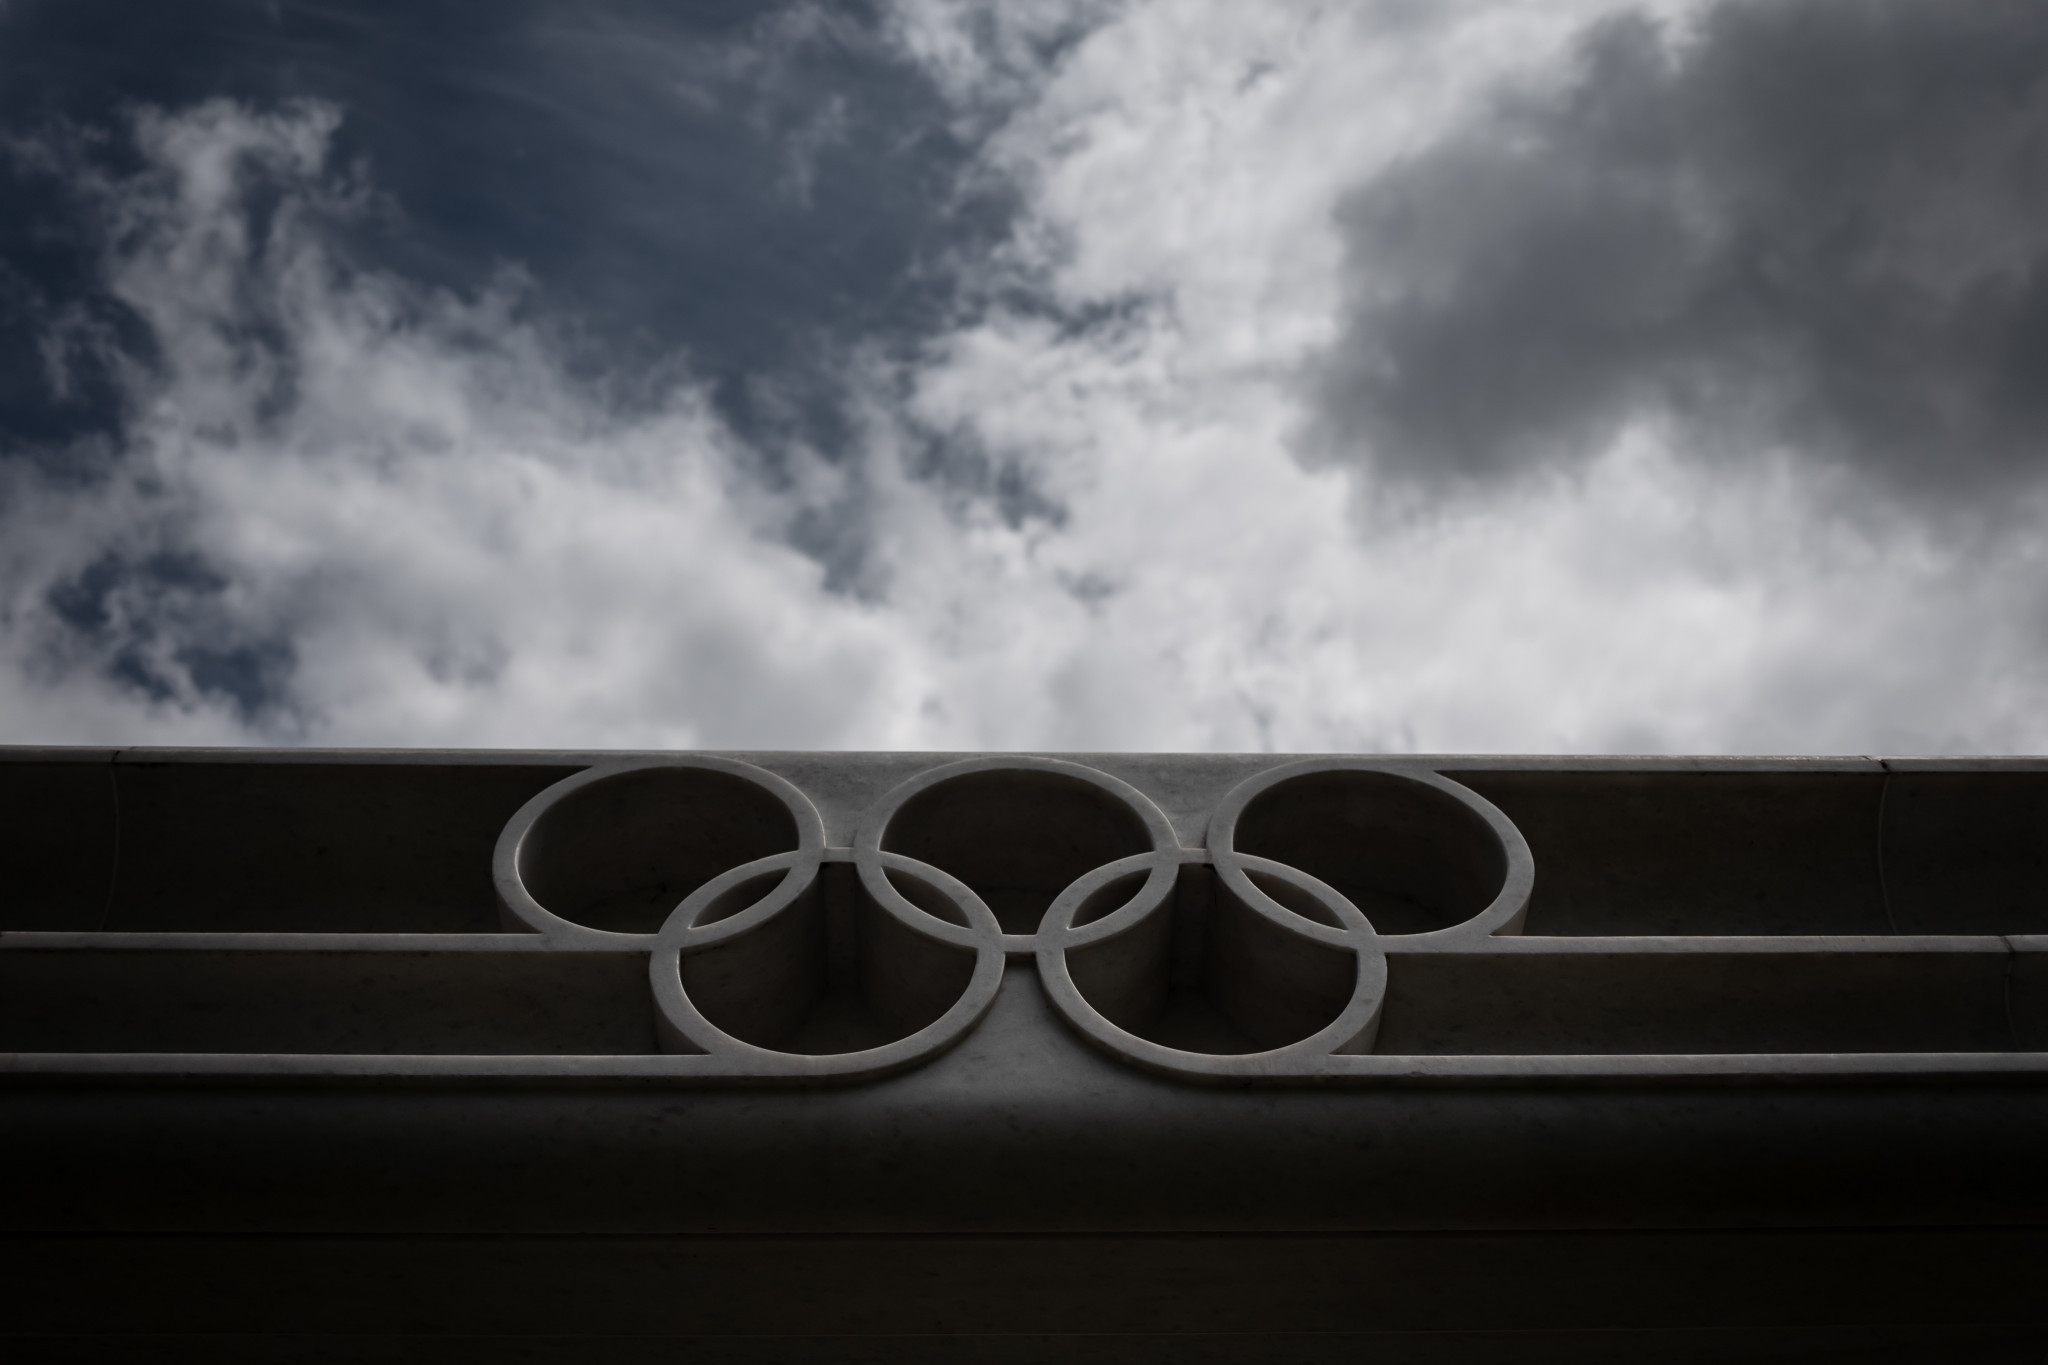 The Hungarian Olympic Committee is awaiting further dialogue with the International Olympic Committee over the 2032 Games ©Getty Images